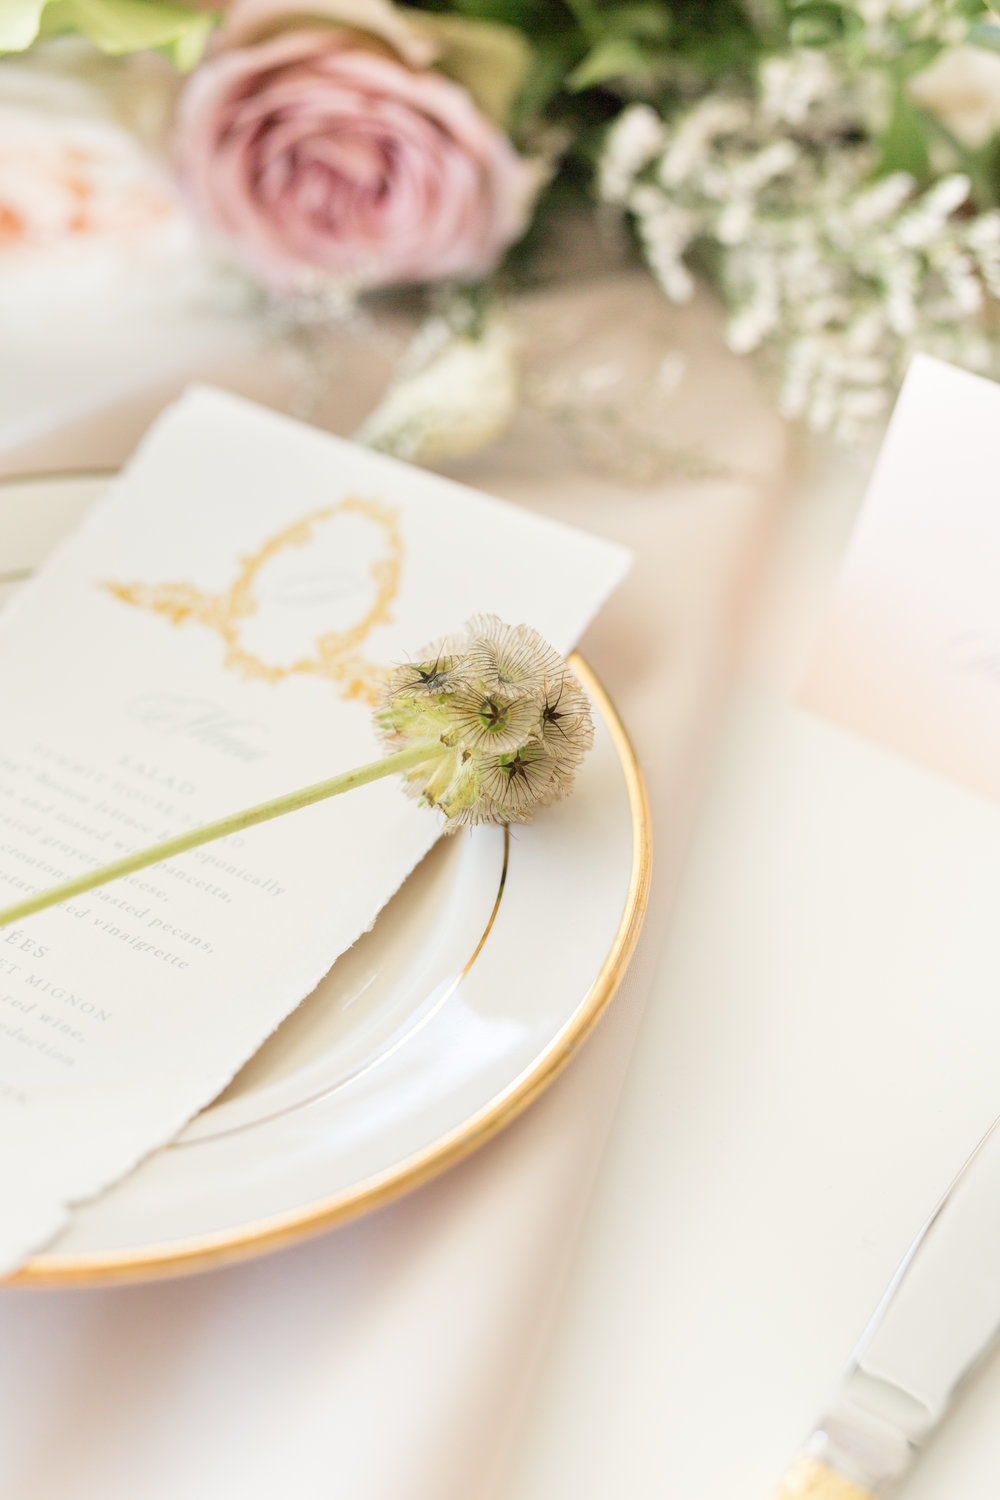 Gina Purcell Photography - Summt House Fullerton - blush - gold wedding-0010.jpg